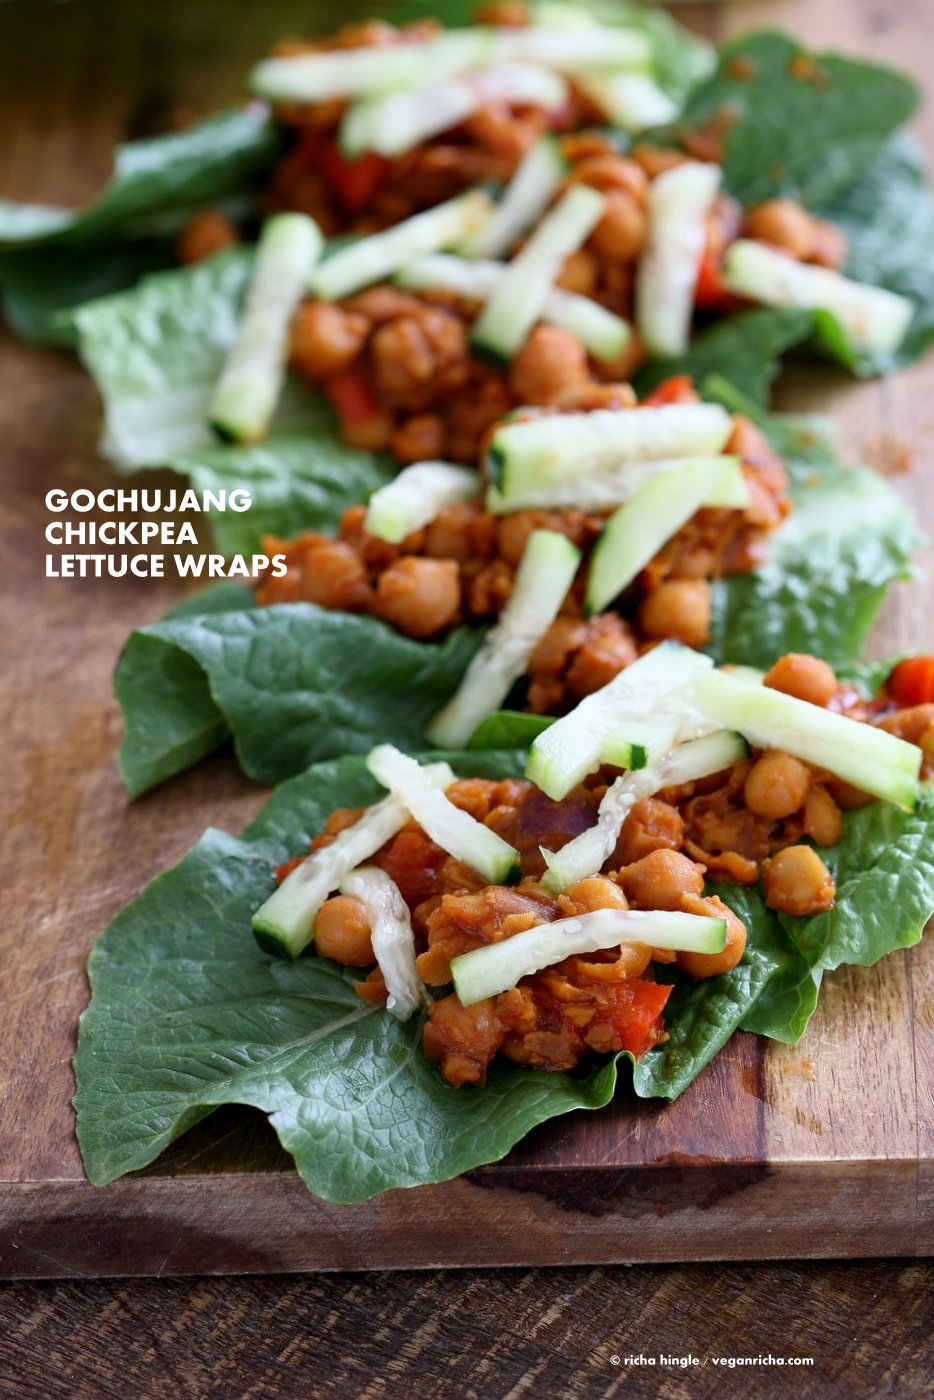 Sweet Spicy Gochujang Chickpea Lettuce Wraps